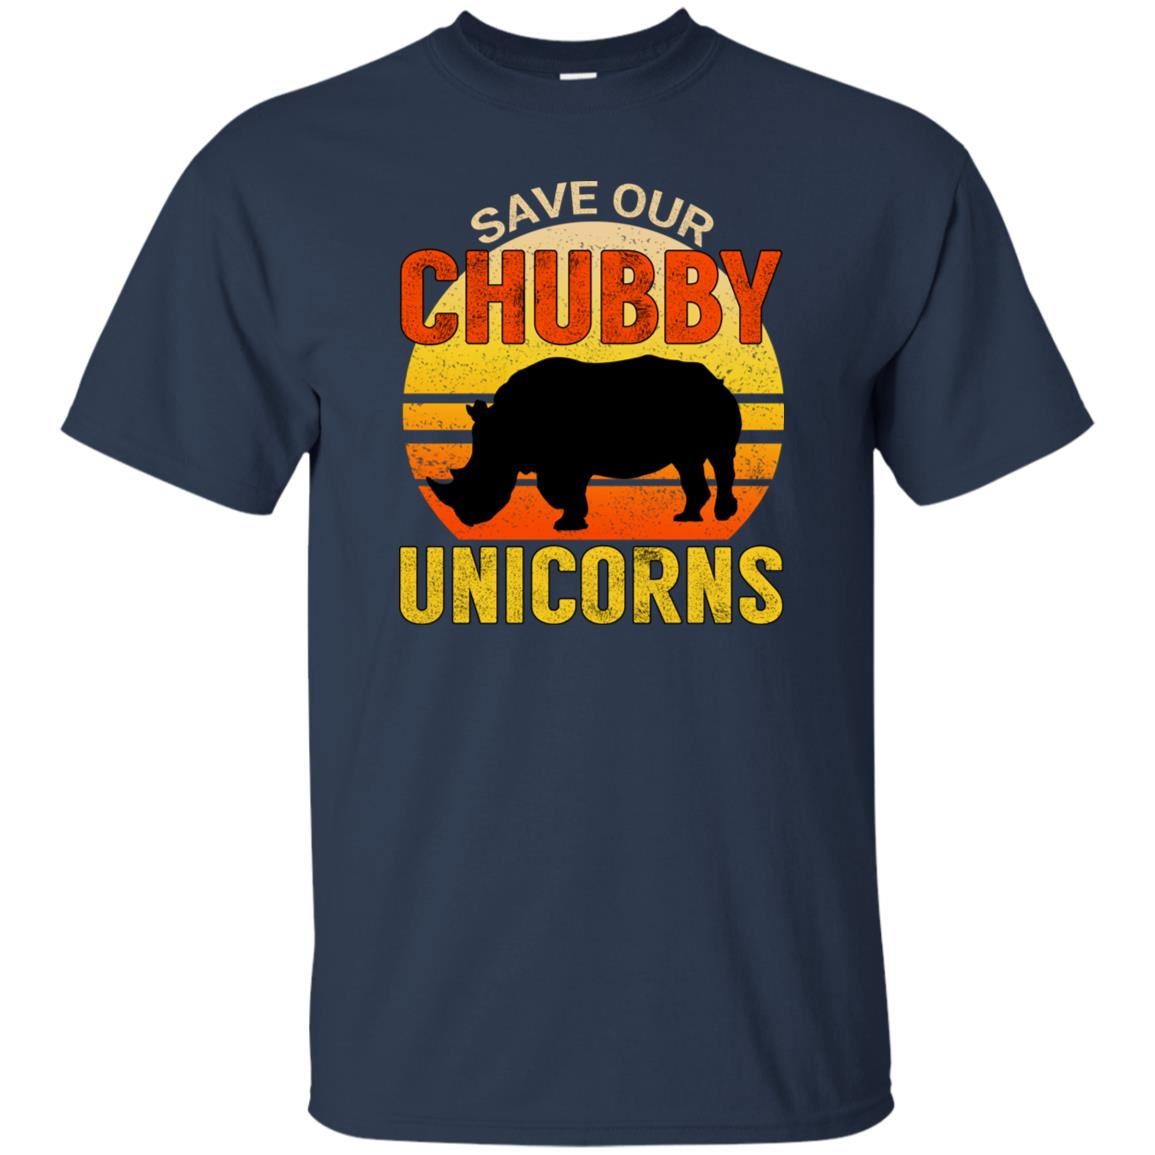 Funny Vintage Save Our Chubby Unicorns Unisex Short Sleeve